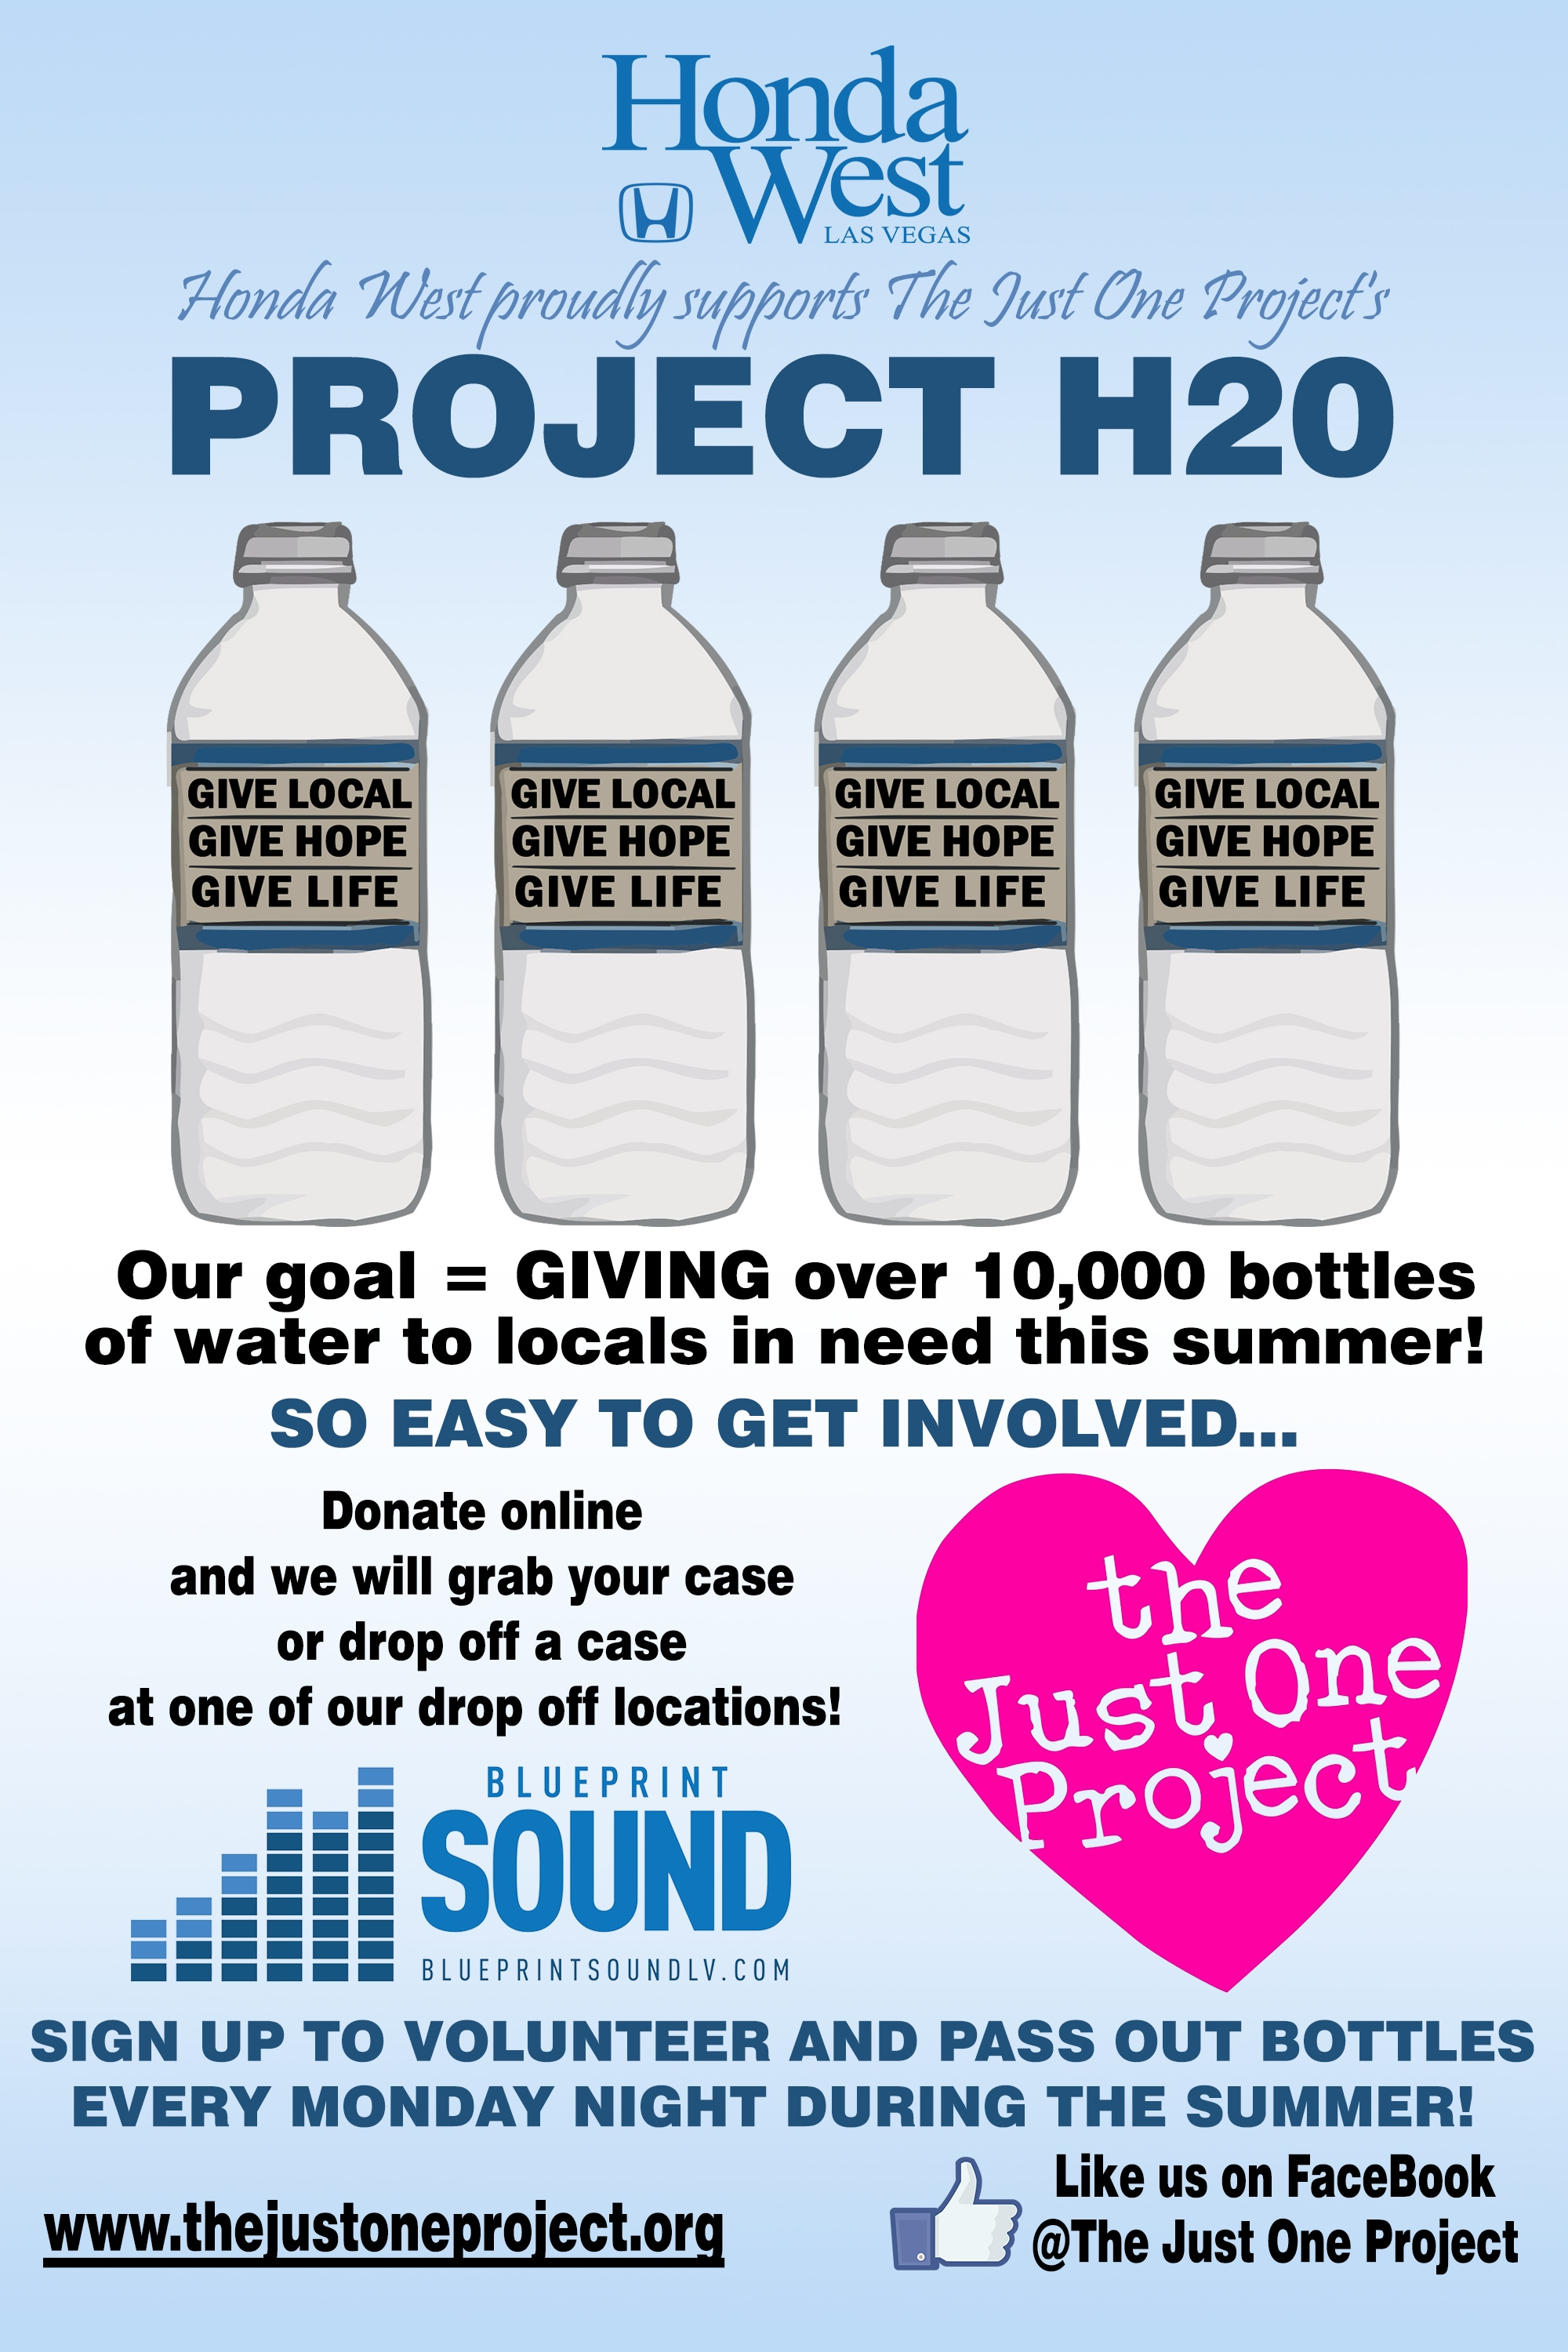 Honda West Is A Proud Sponsor Of Project H2O. Along With Donating A Pallet  Of Water, We Are Also A Drop Off Location. Please Drop Off A Case Of Water  At ...